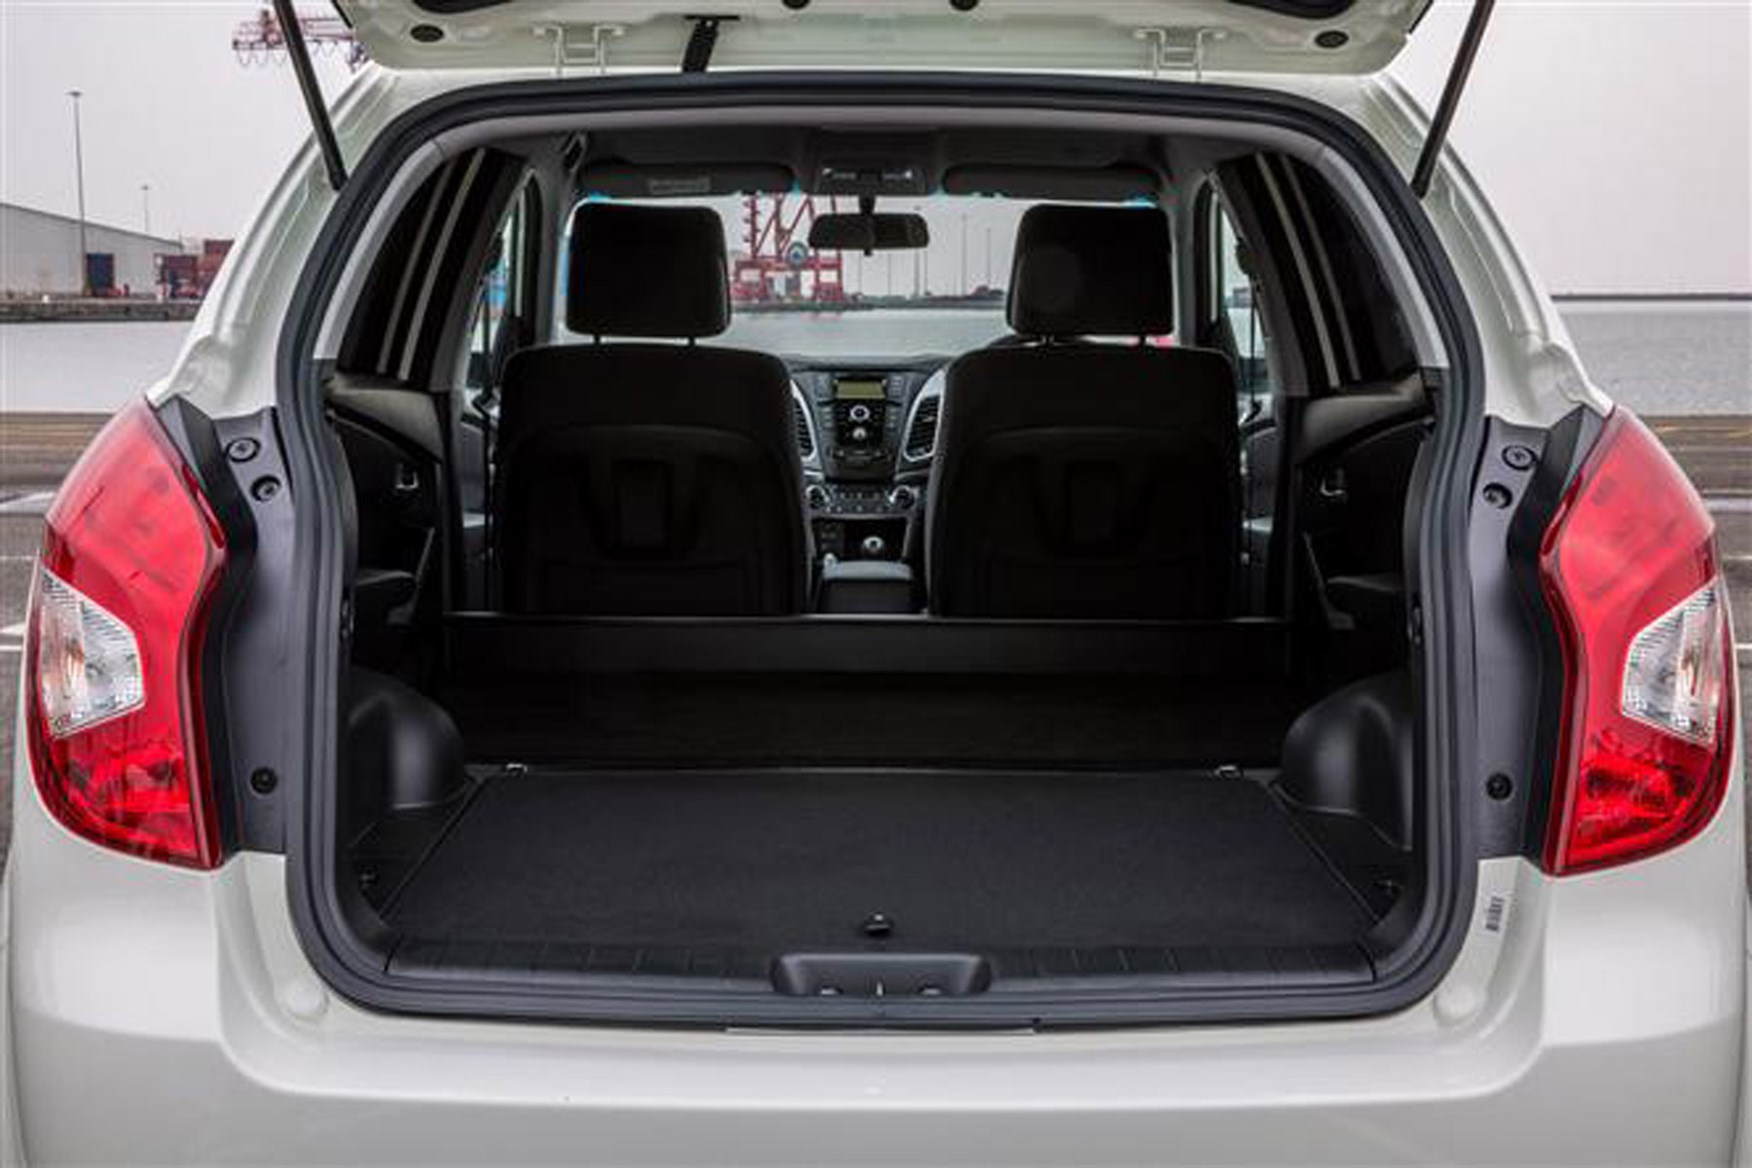 SsangYong Korando review on Parkers Vans - load area